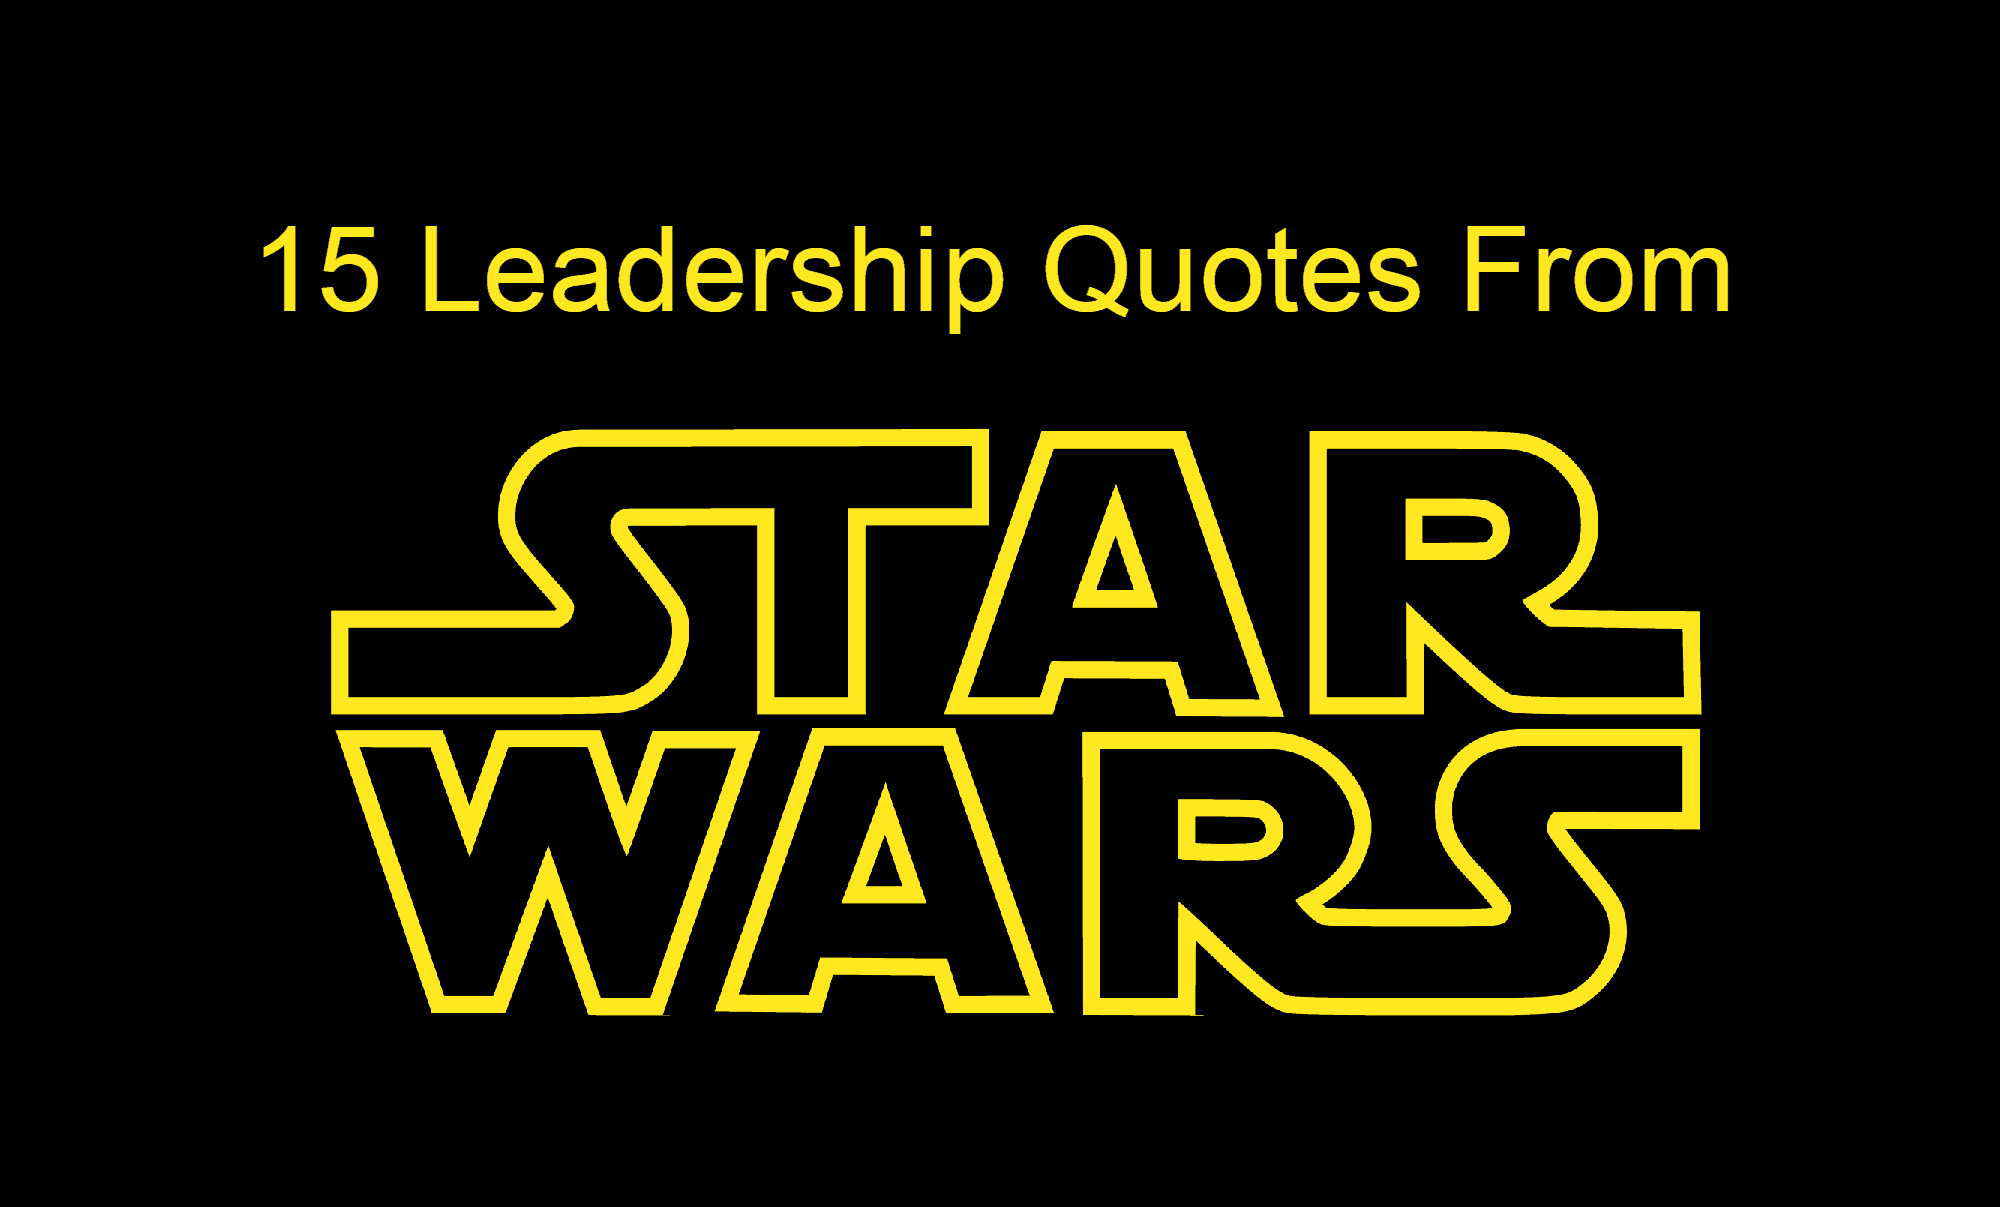 Leadership Quotes Prepossessing 15 Leadership Quotes From Star Wars For Star Wars Day  Joseph Lalonde